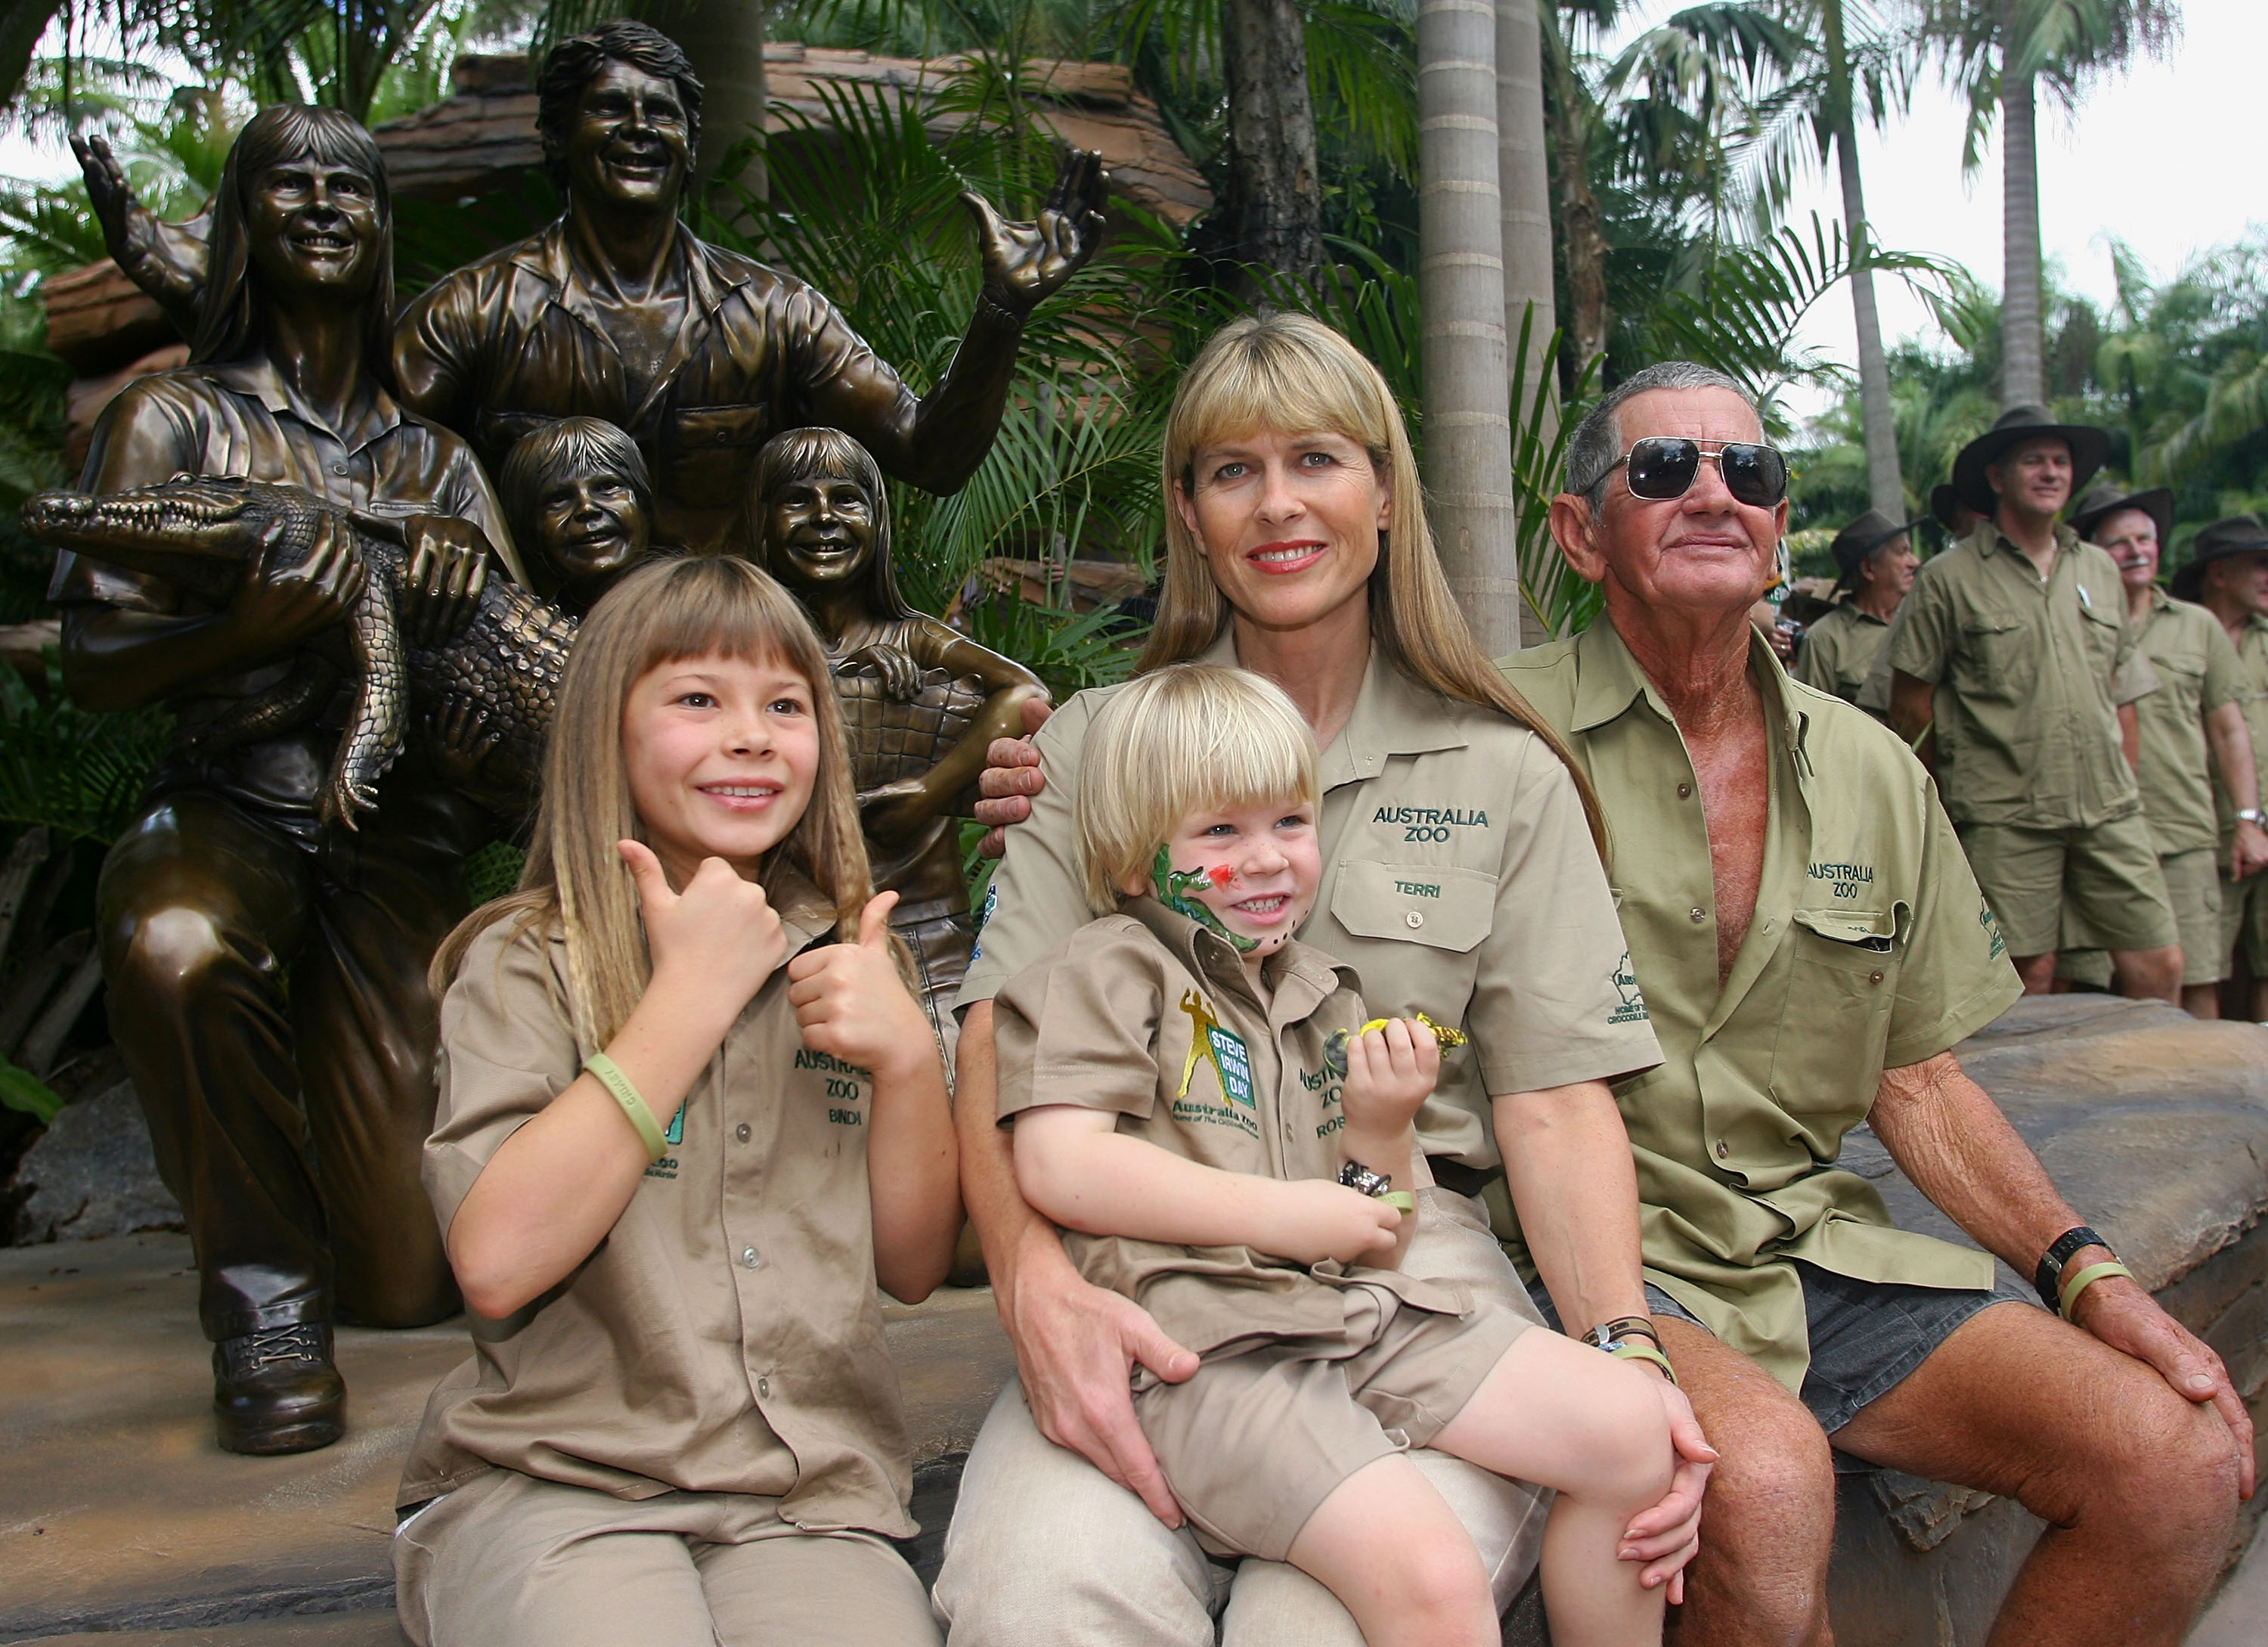 Bindi, Robert, Terri and Bob Irwin pose in front of a statue of the family that was unveiled today during 'Steve Irwin Memorial Day' at Australia Zoo on November 15, 2007 on the Sunshine Coast, Australia. (Photo by Bradley Kanaris/Getty Images)